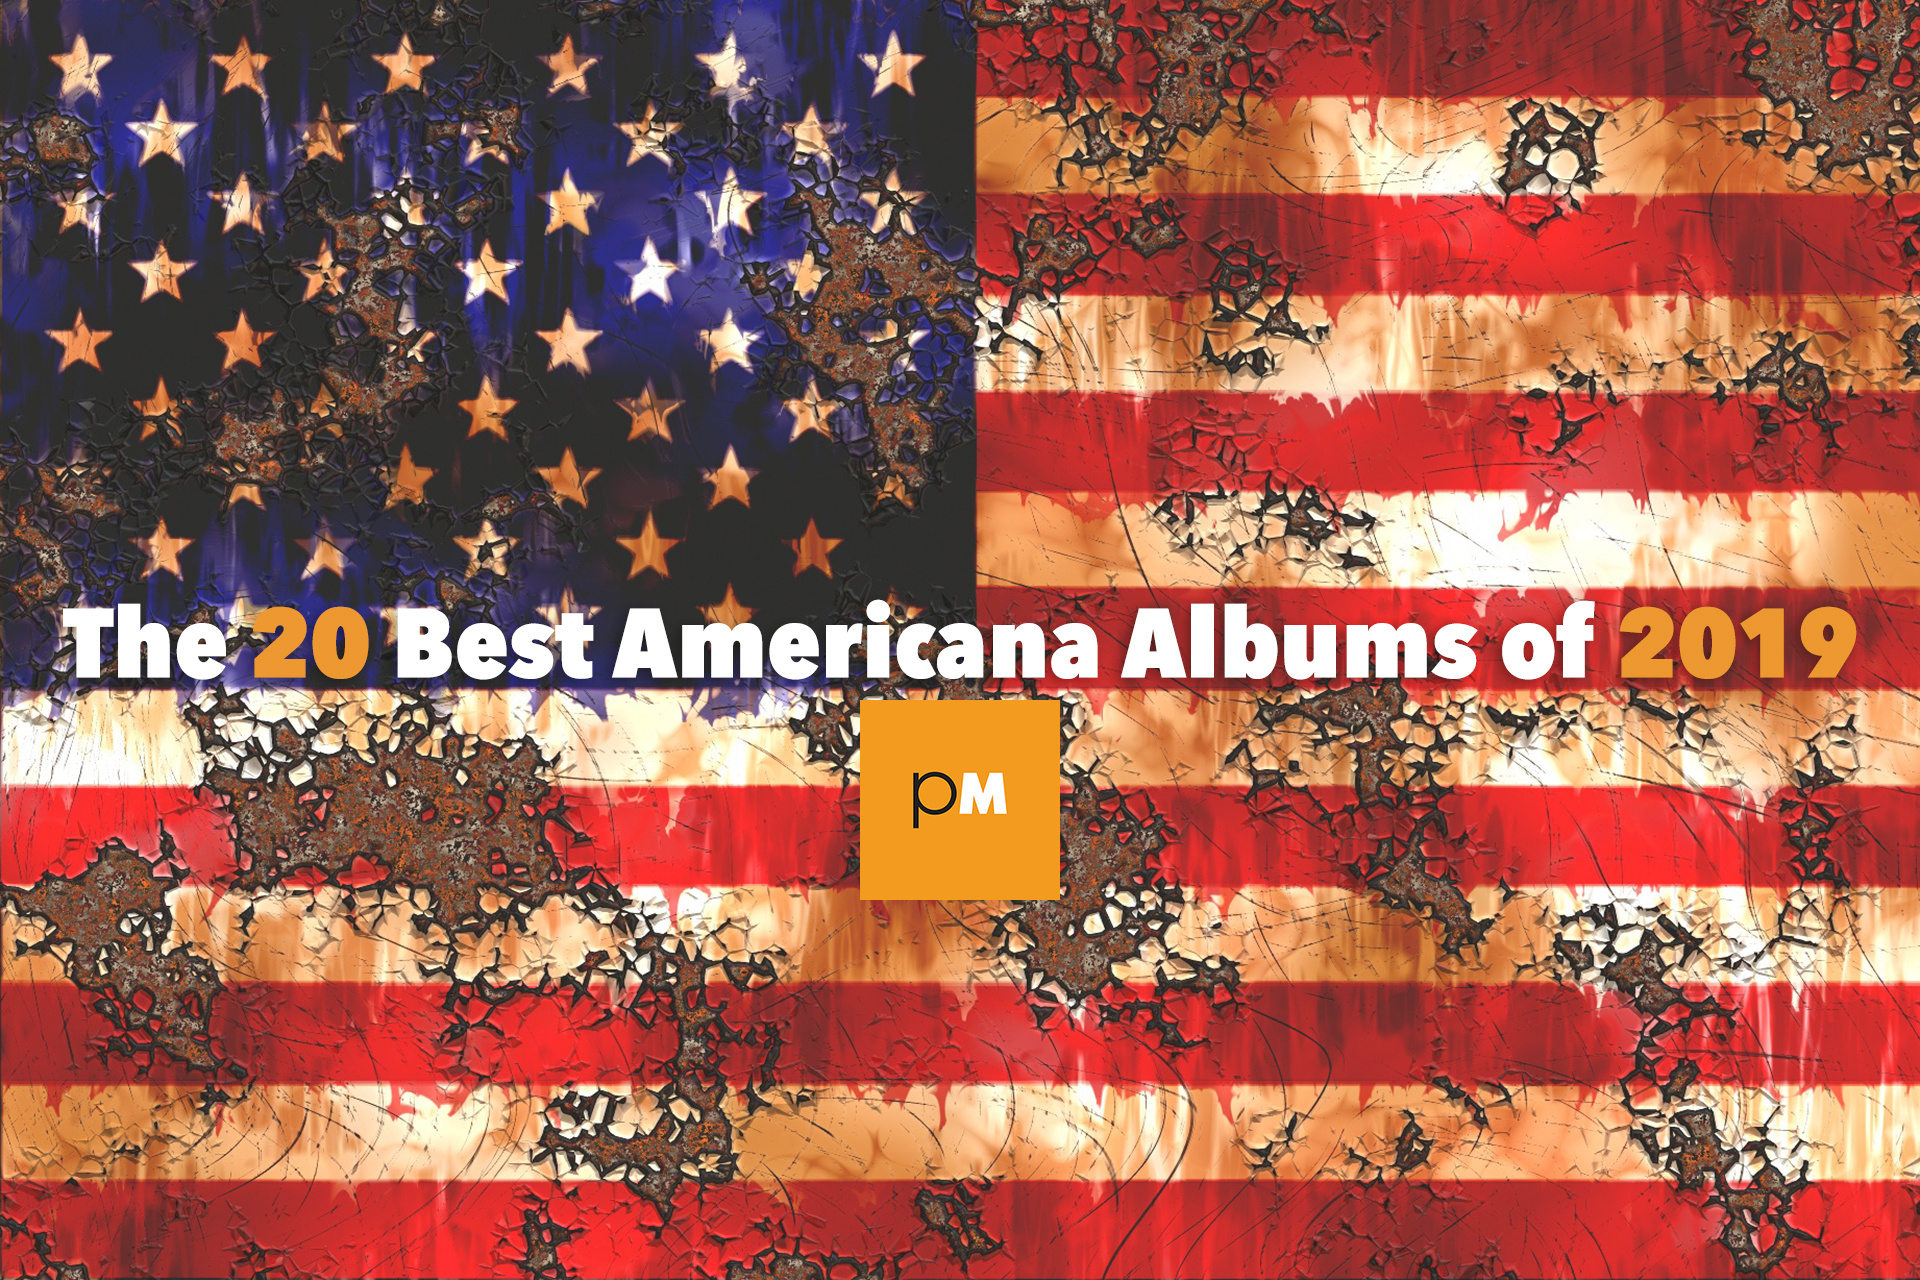 The 20 Best Americana Albums of 2019